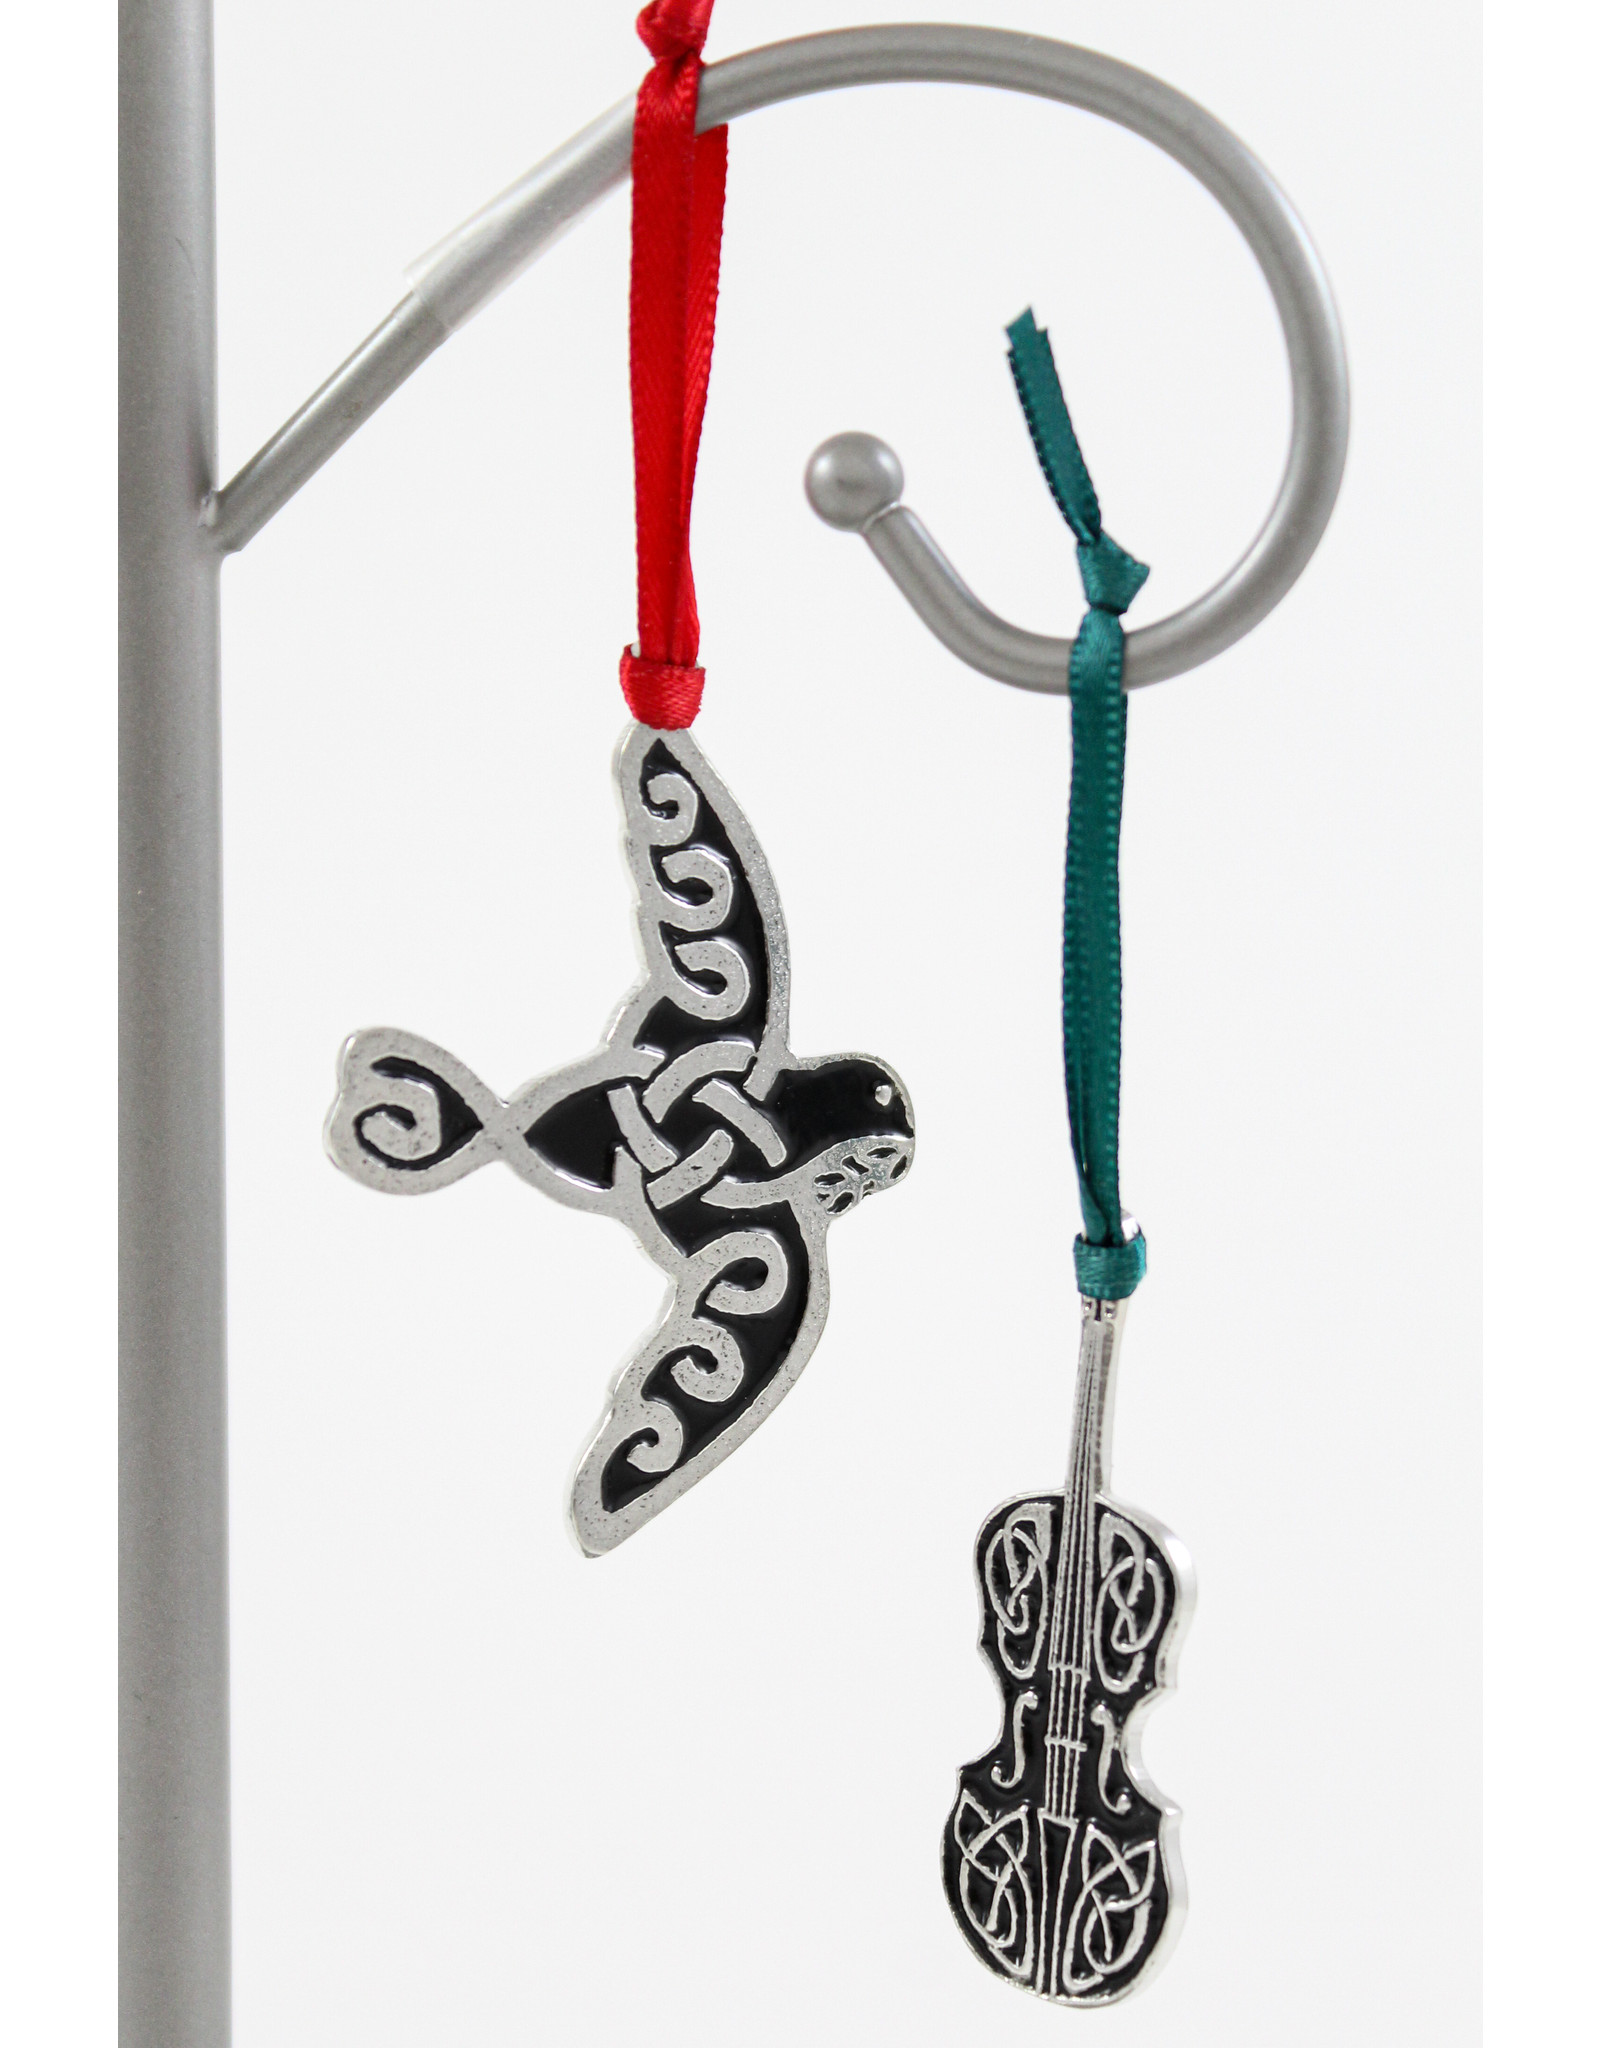 Piper Pewter Christmas Ornaments by Piper Pewter